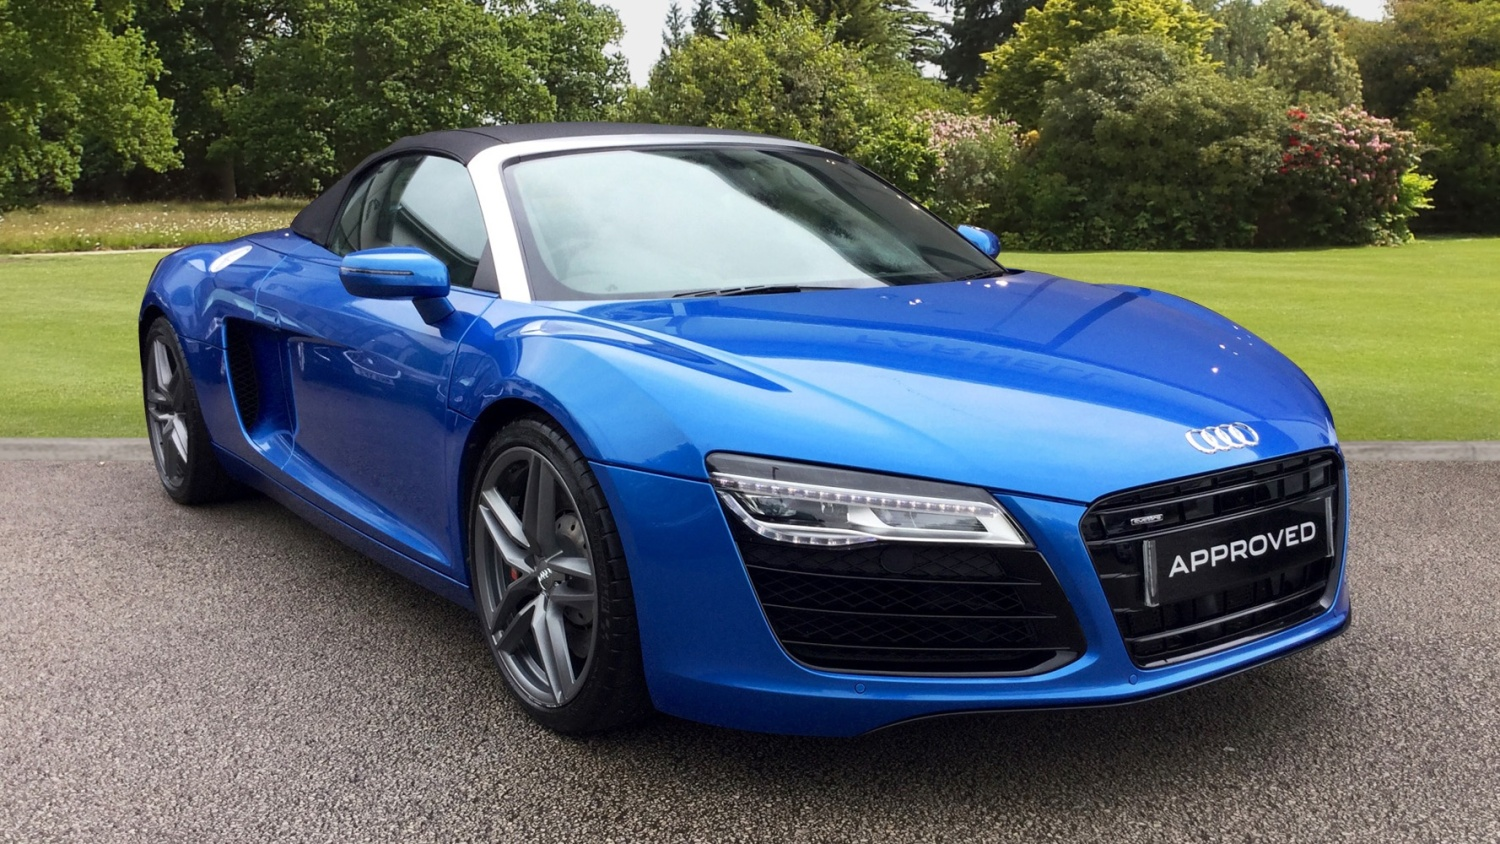 used audi r8 4 2 fsi v8 quattro 2dr s tronic petrol convertible for sale farnell jaguar. Black Bedroom Furniture Sets. Home Design Ideas